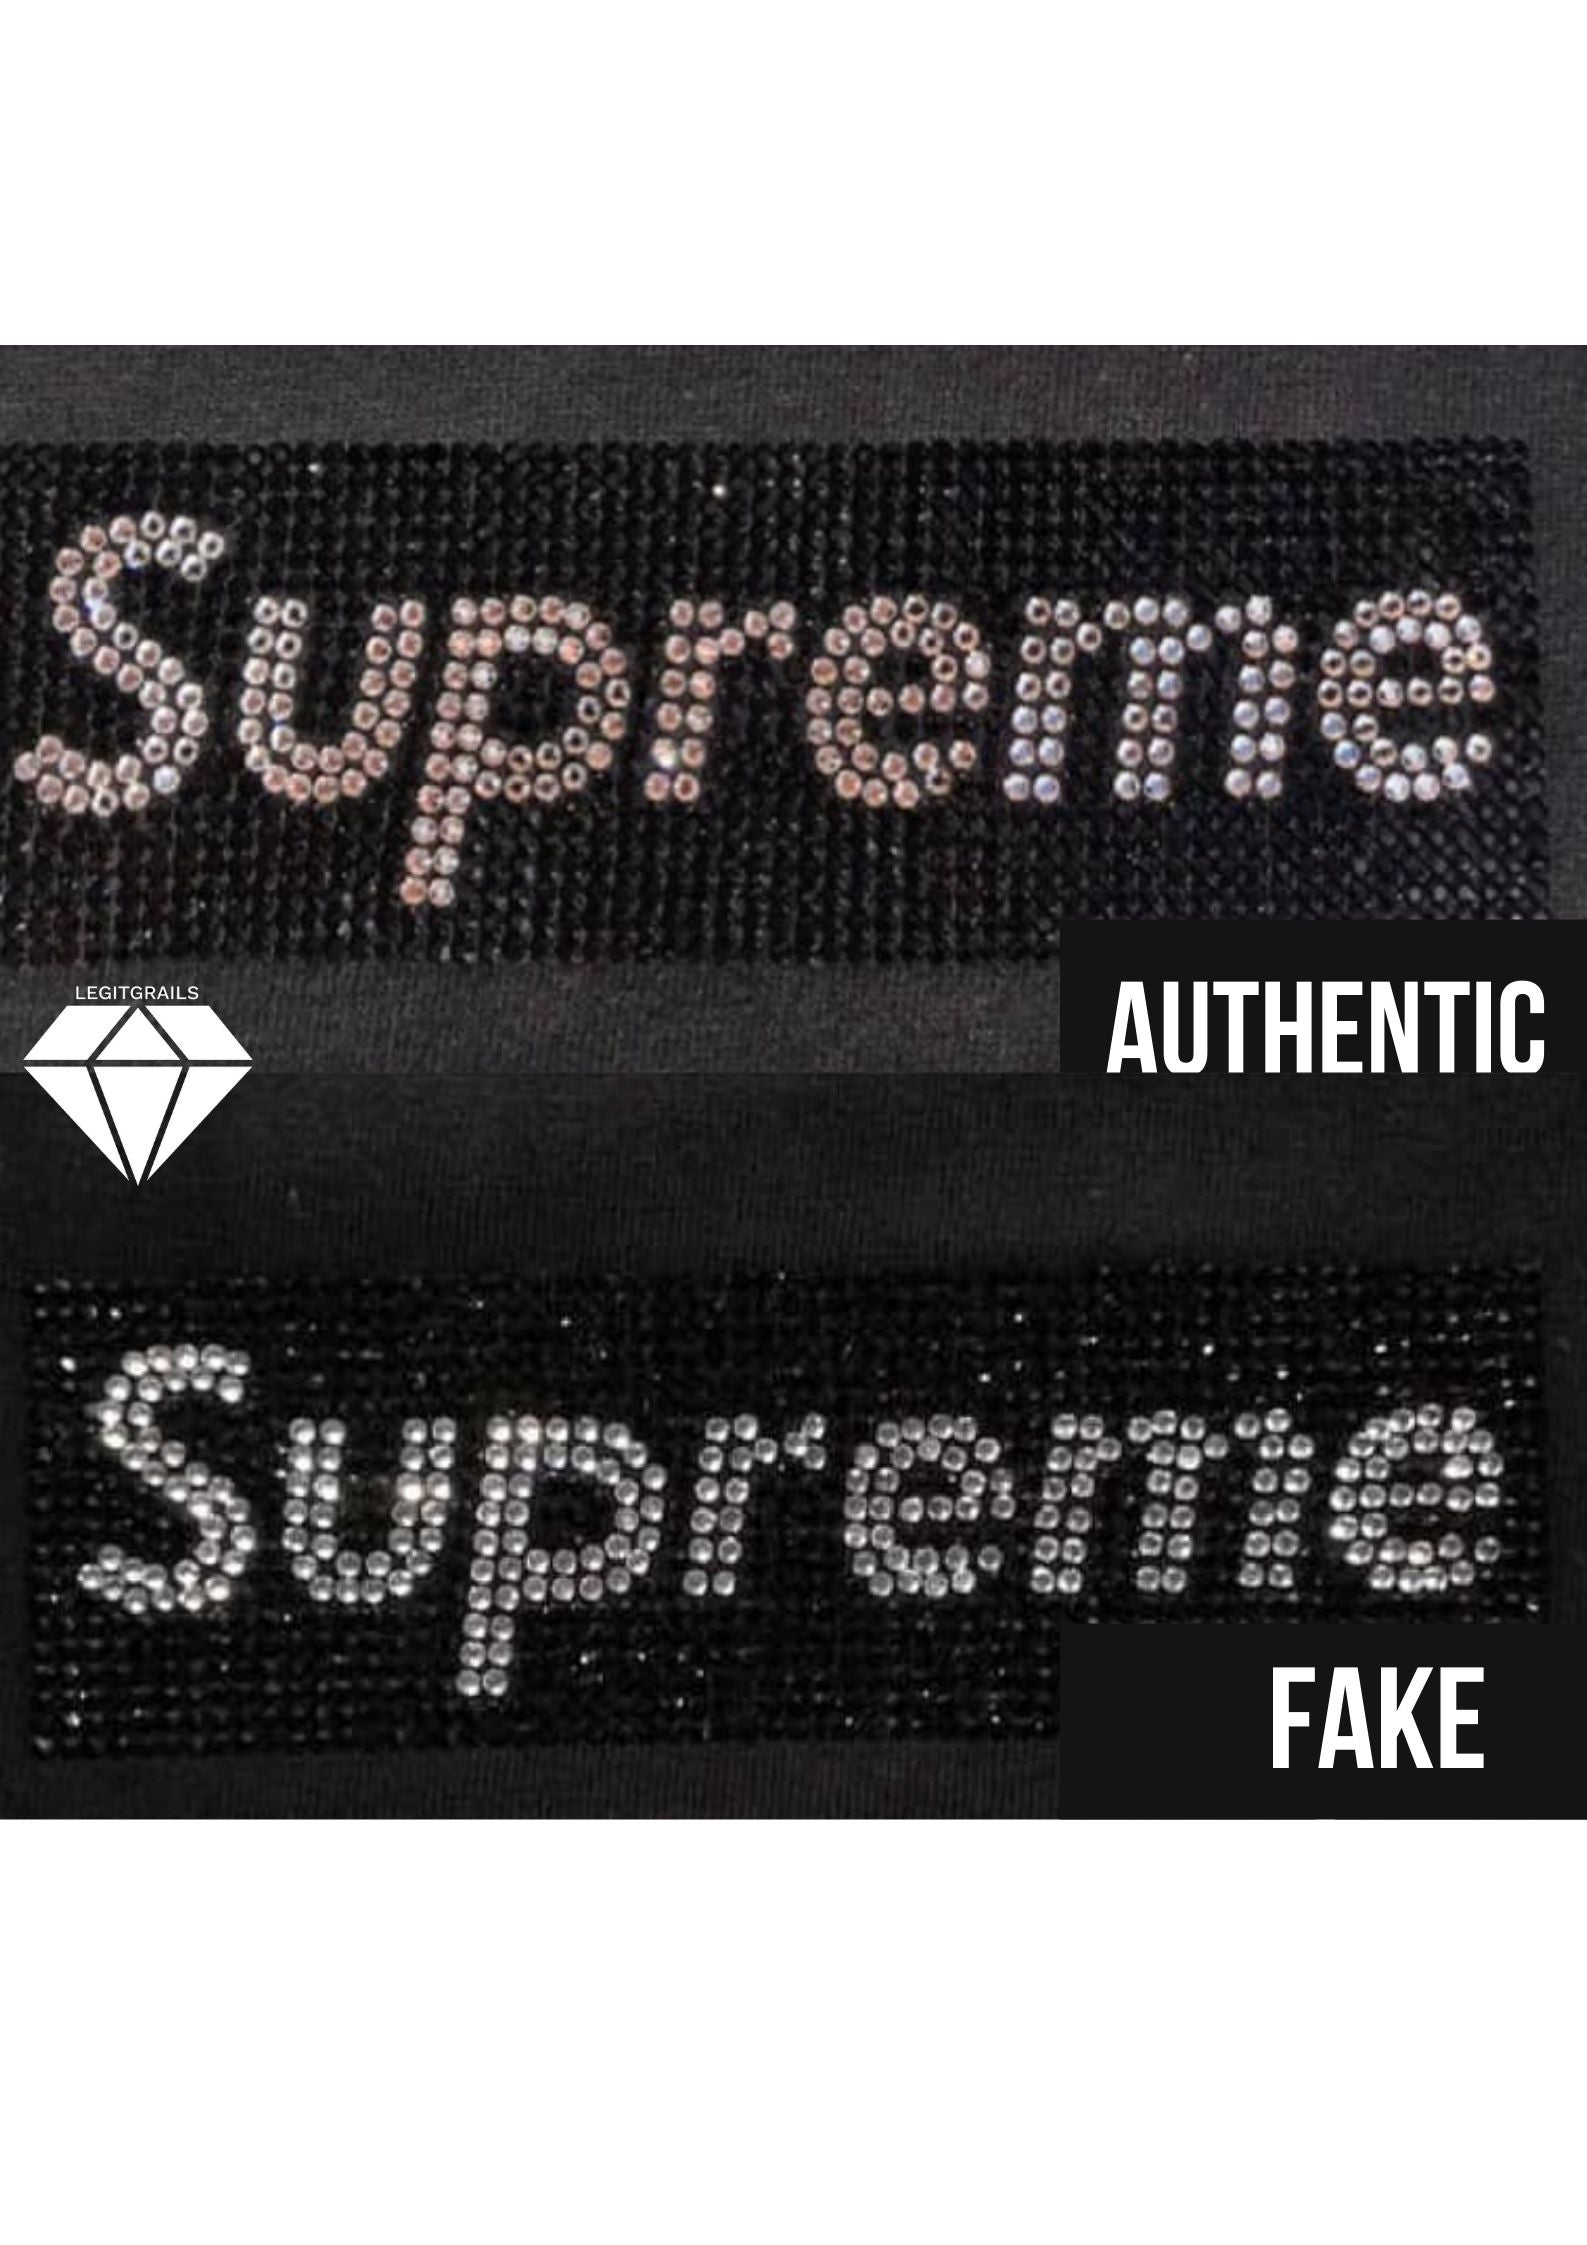 Supreme Swarovski Box Logo T Shirt Real vs Fake | Supreme Legit Check